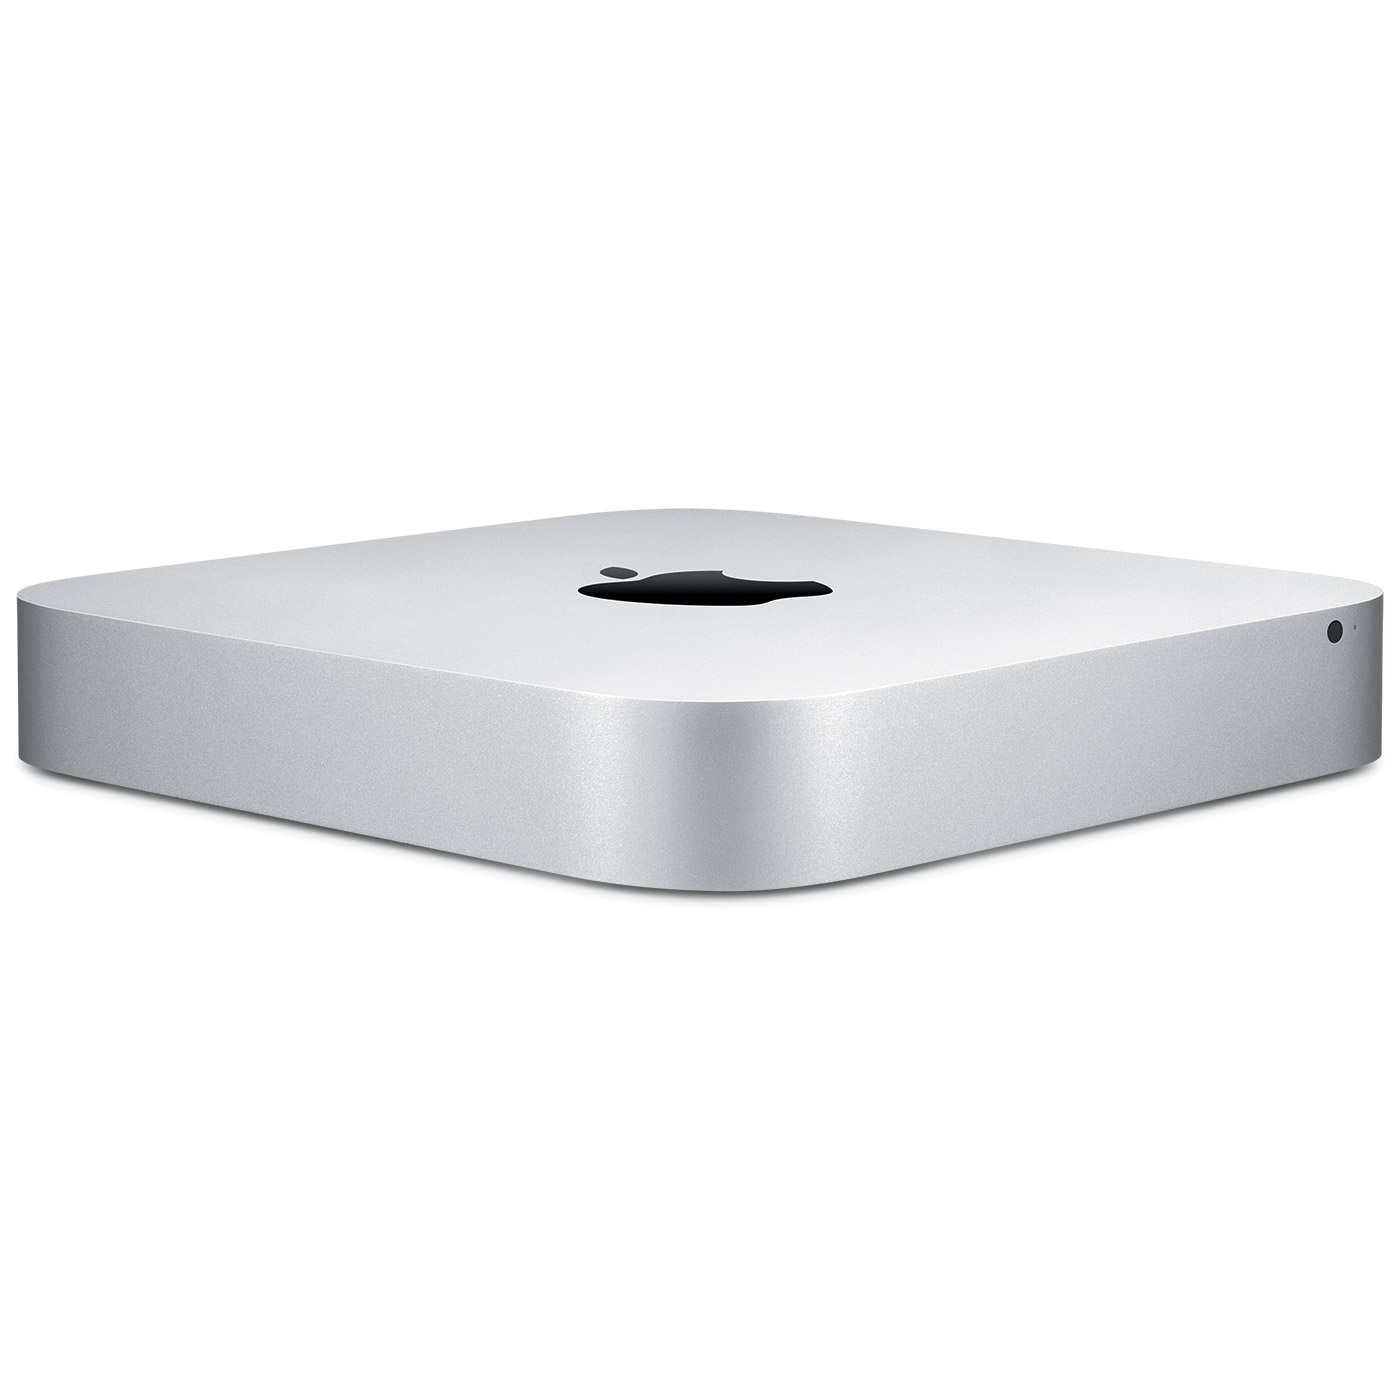 apple mac mini mgem2f a ordinateur mac apple sur ldlc. Black Bedroom Furniture Sets. Home Design Ideas